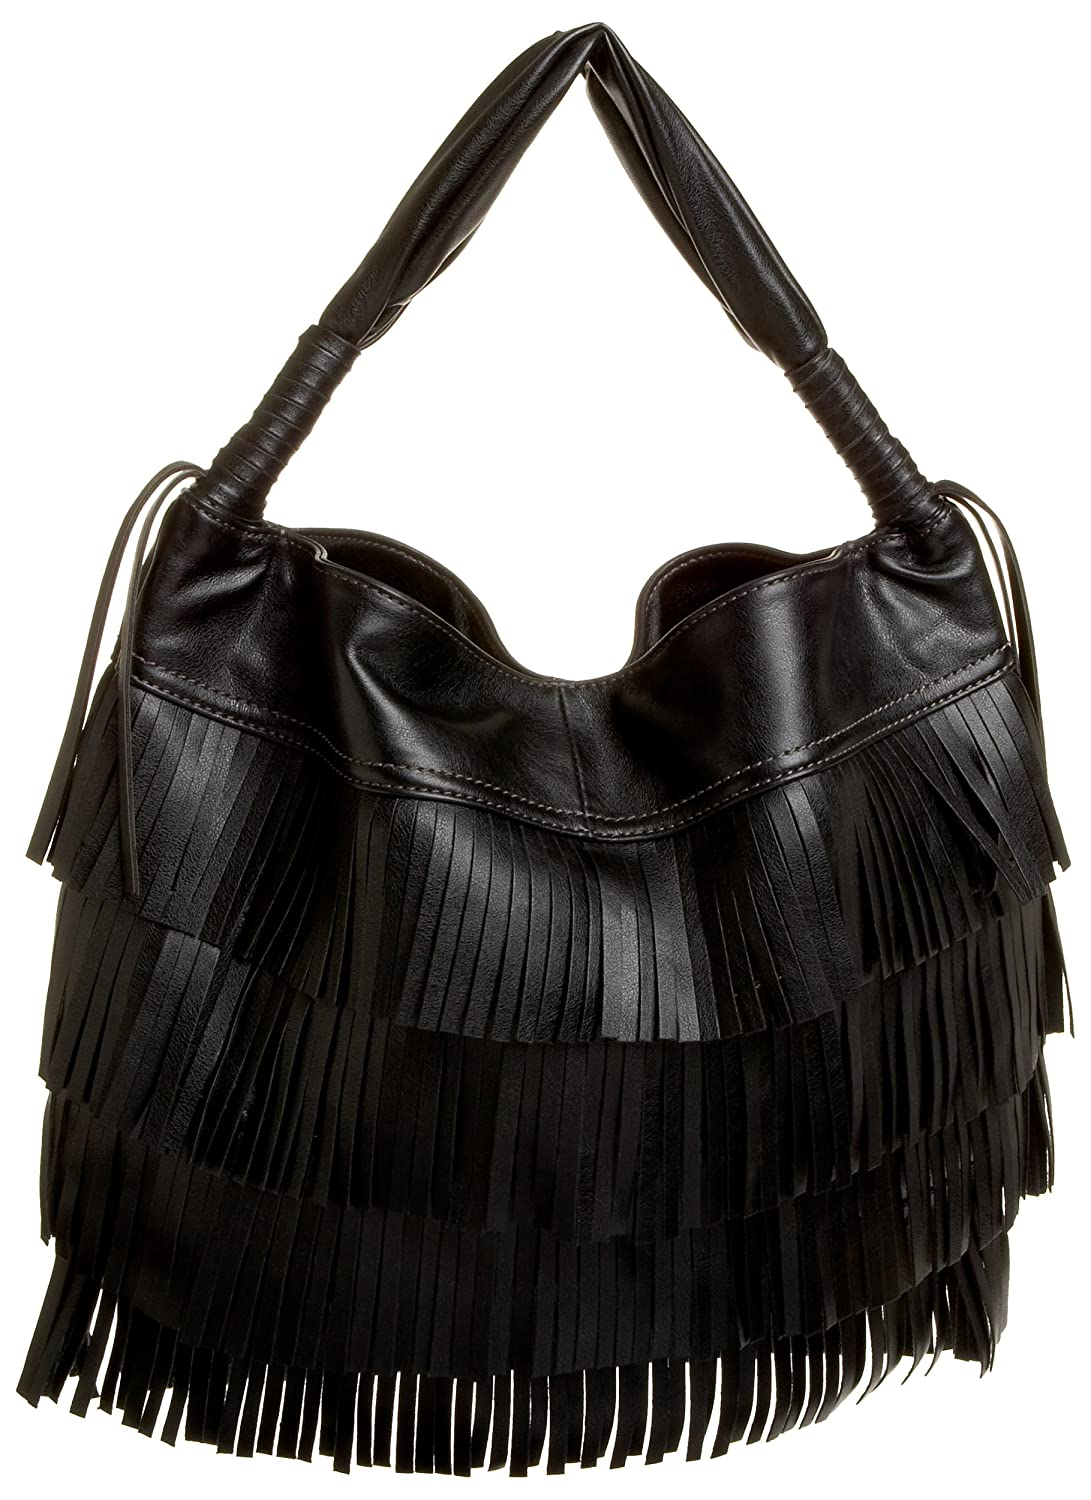 Melie Bianco Fringe Hobo - Free Overnight Shipping & Return Shipping: Endless.com from endless.com